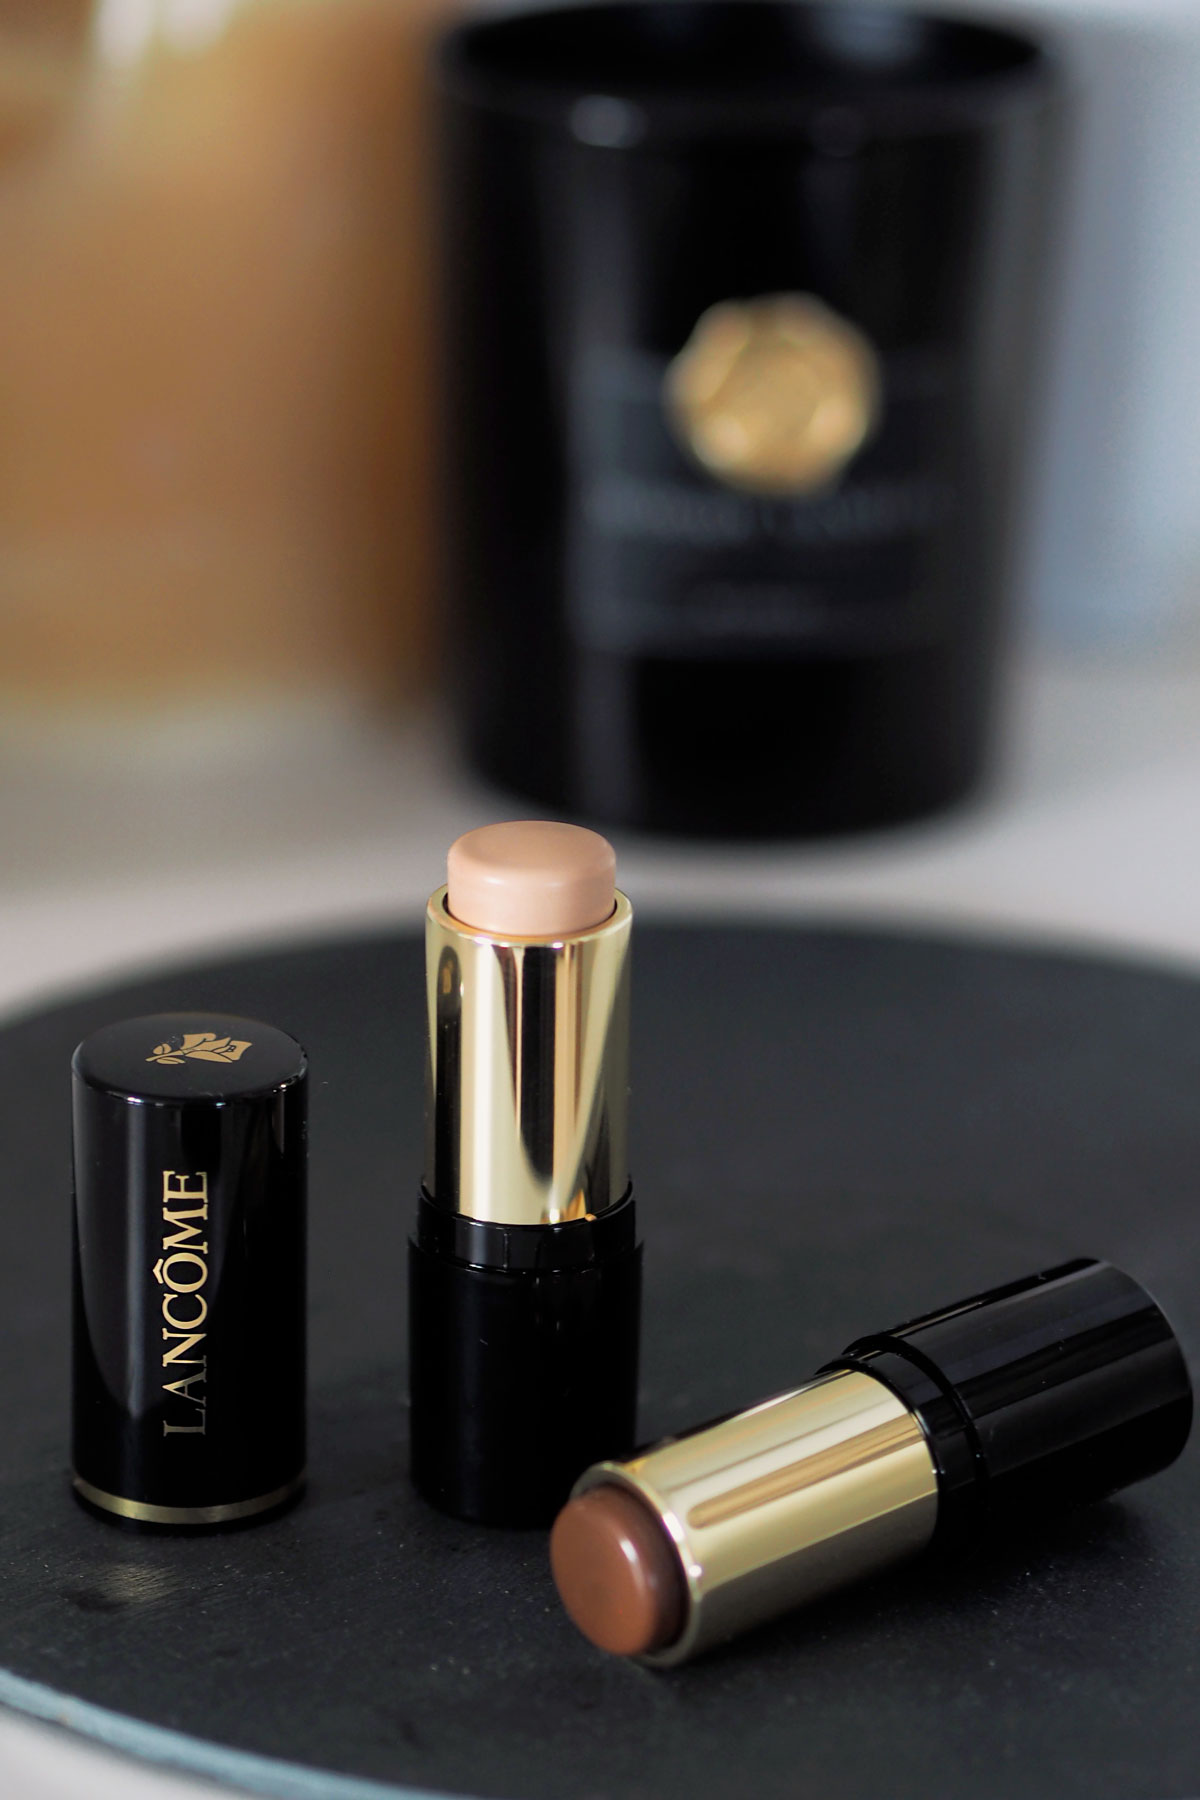 Lancome Teint Idole Ultra Foundation Sticks